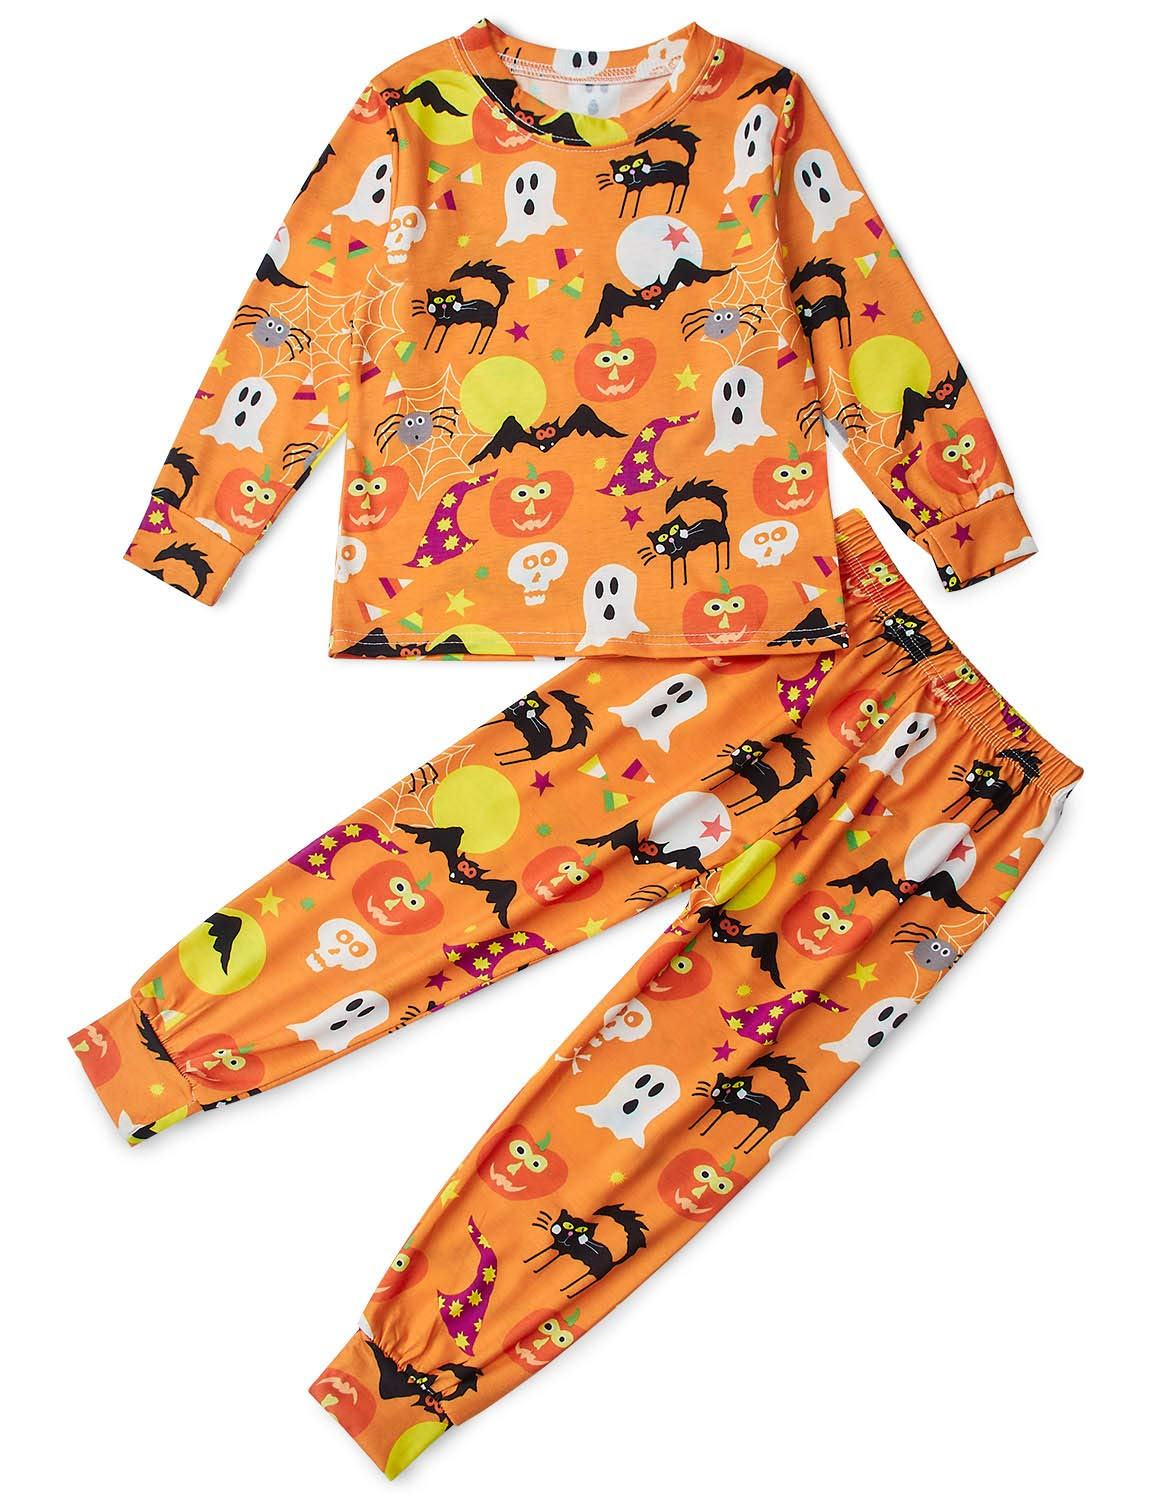 Funnycokid Halloween Party Pajamas for Boys Long Sleeve Sleepwear for Kids 2 Piece PJS Sets